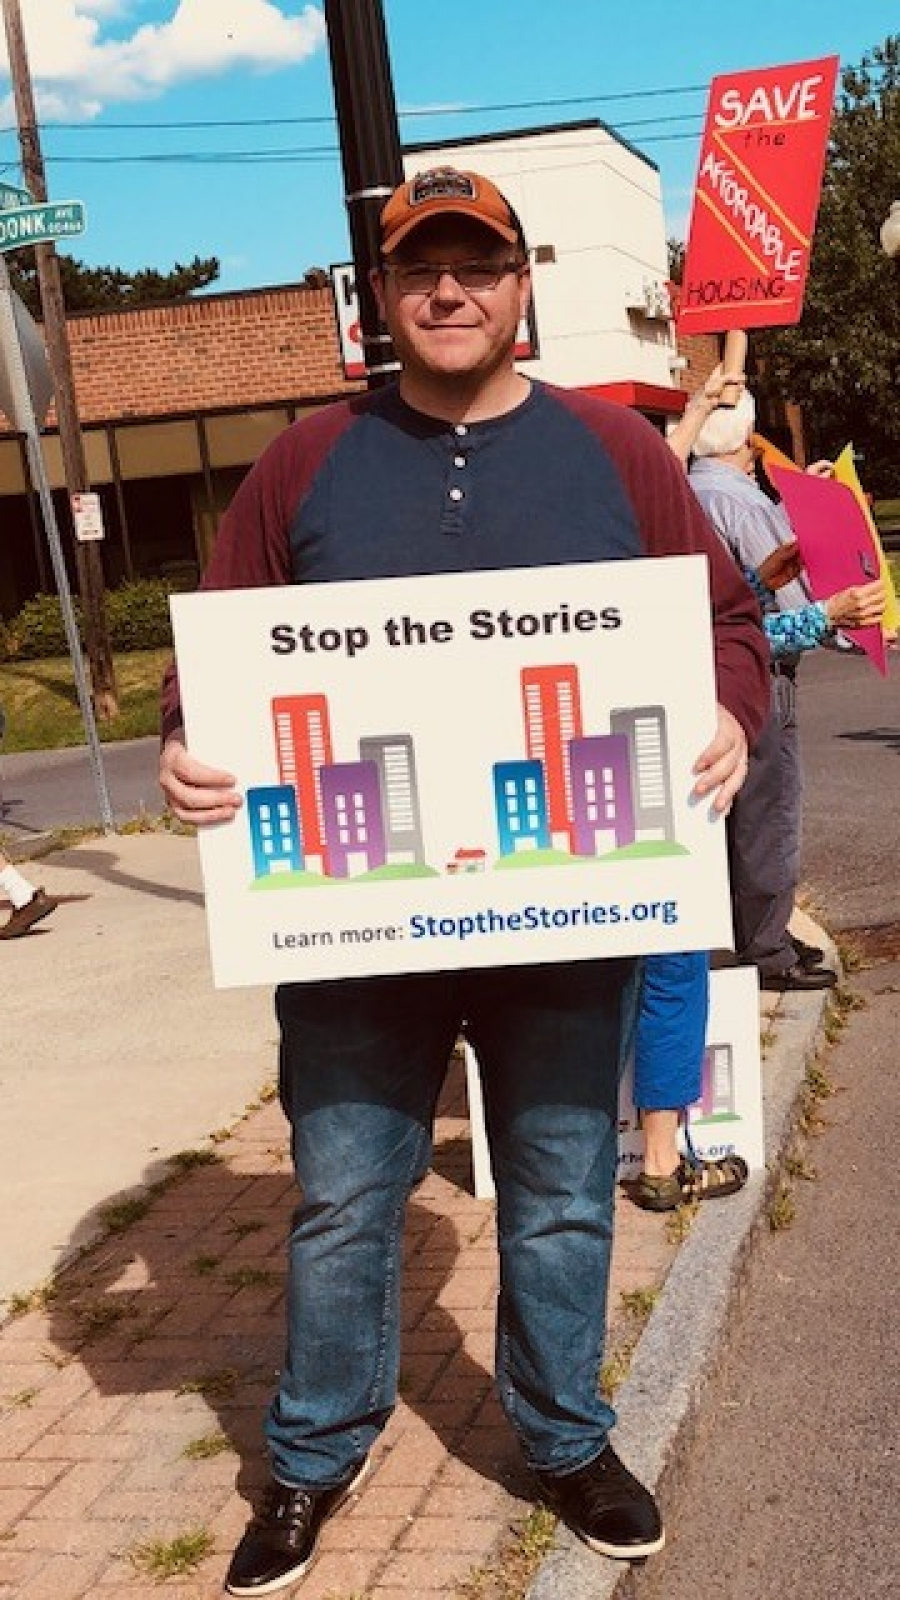 Zach Simpson talks about Stop the Stories